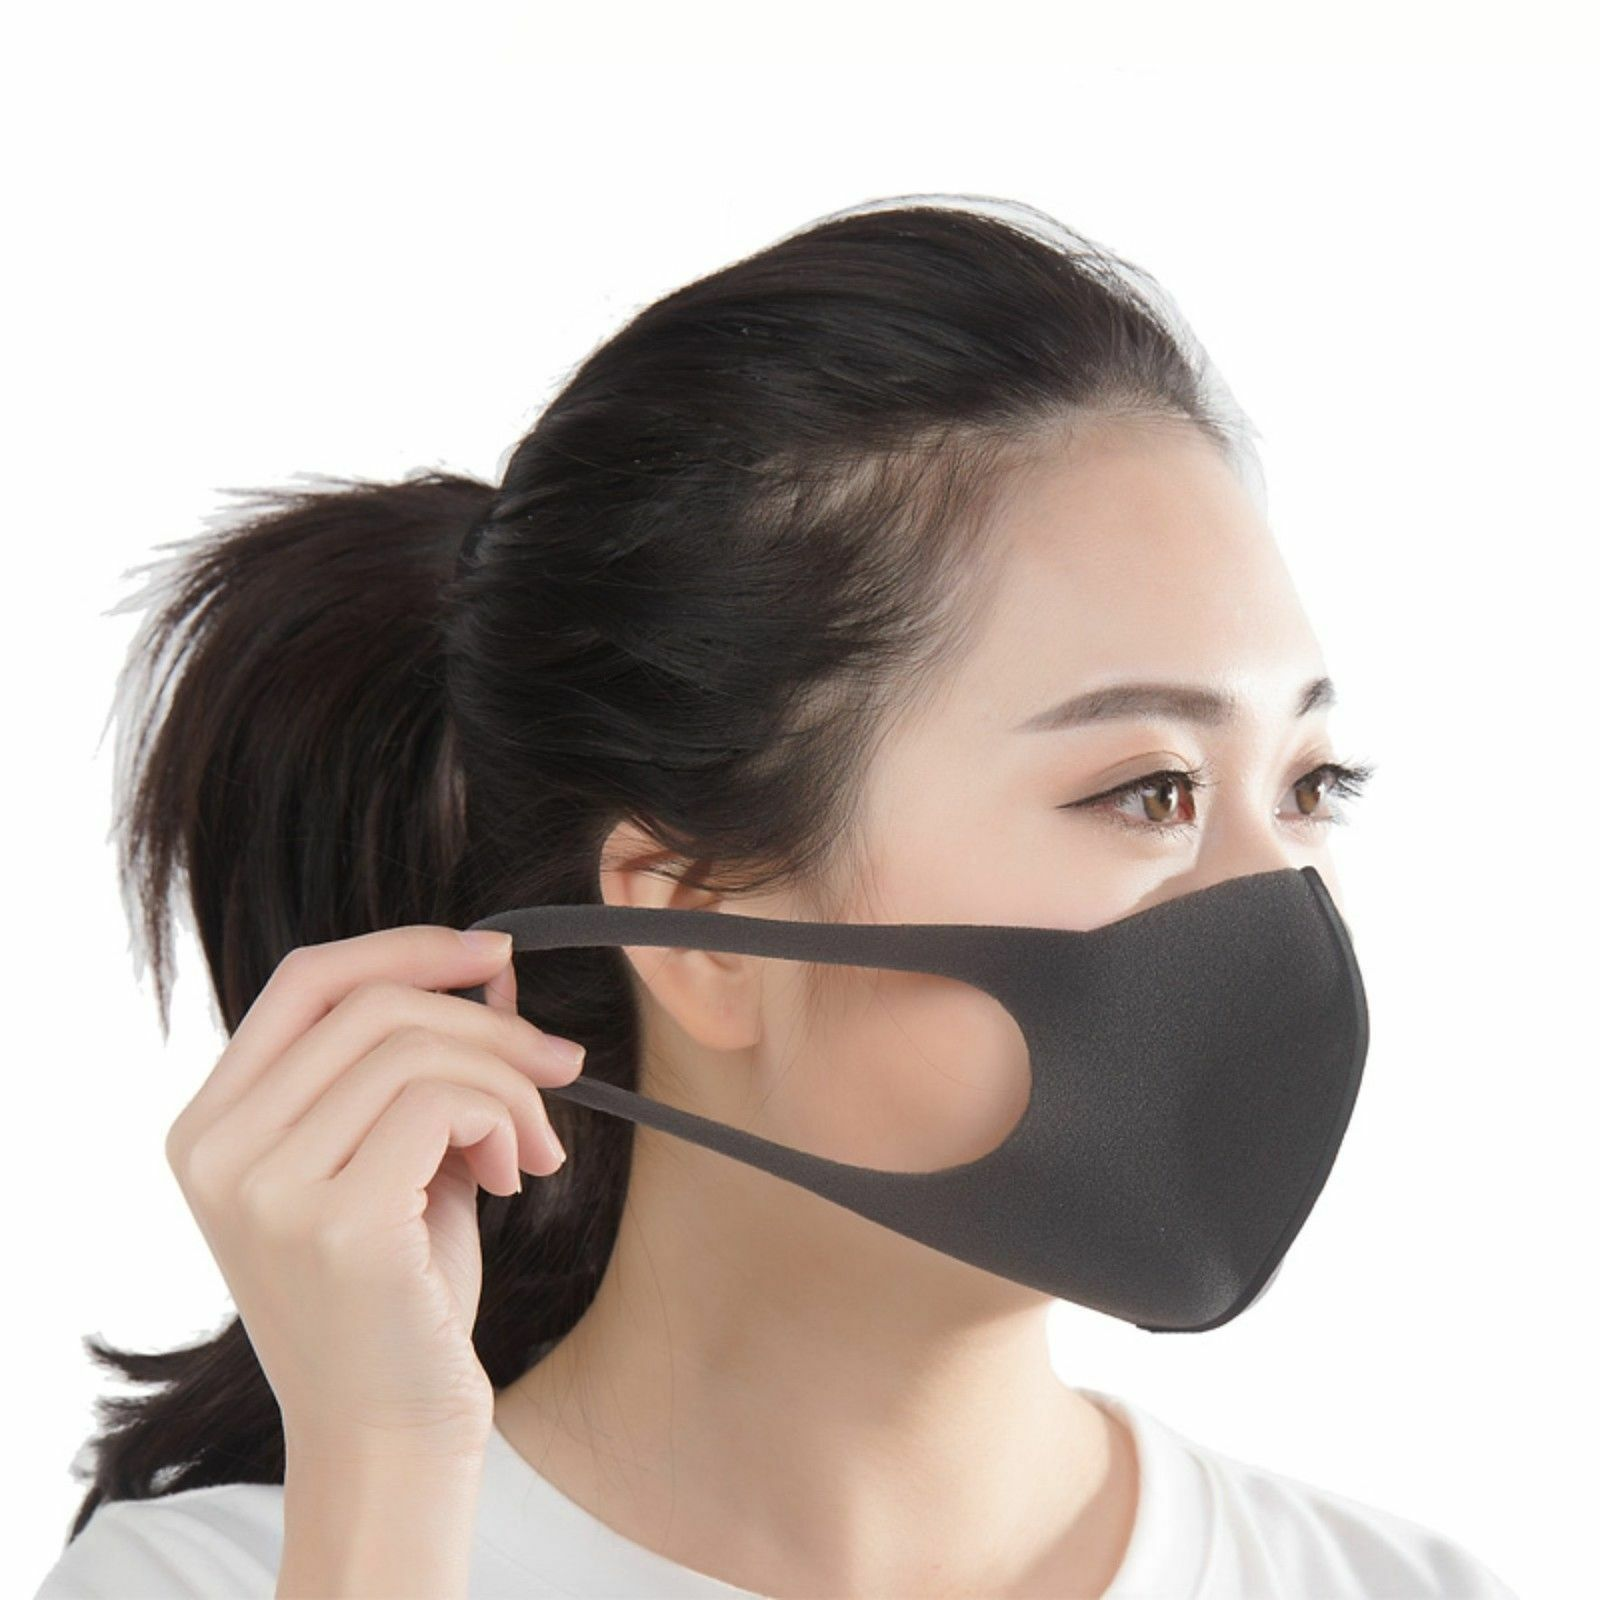 New 3/6/10/60/120pcs Regular Size Black Pitta Mask Dark Gray Japan Anti-Pollution/Dust Face Mask Dropshipping